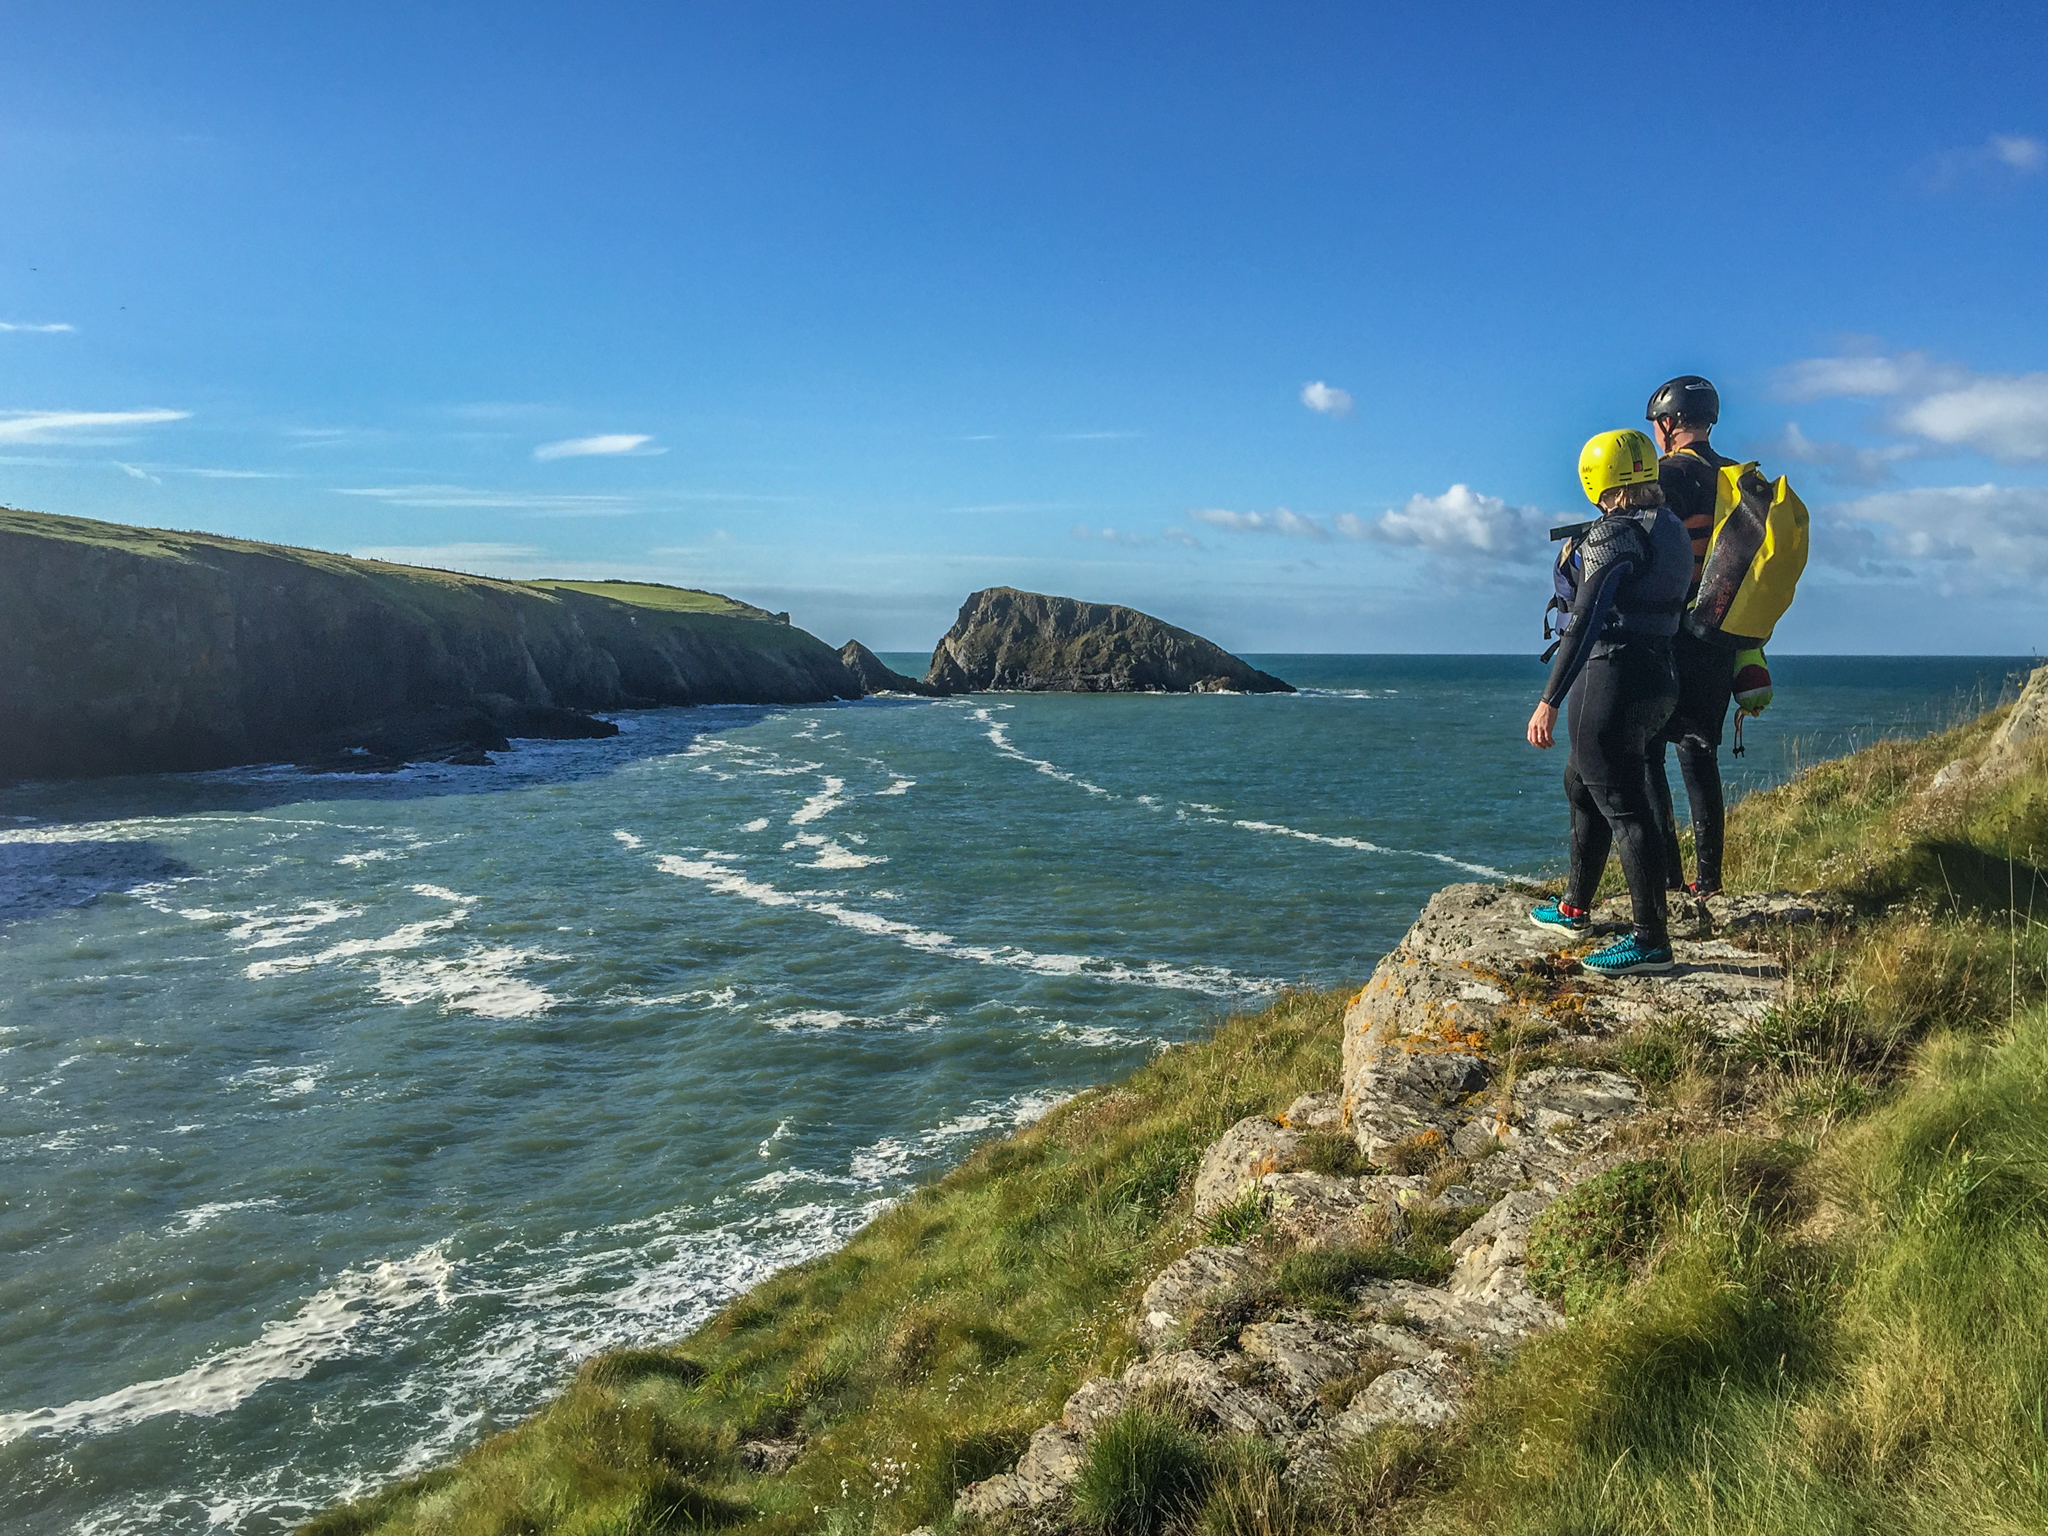 It was truly a great day Coasteering.